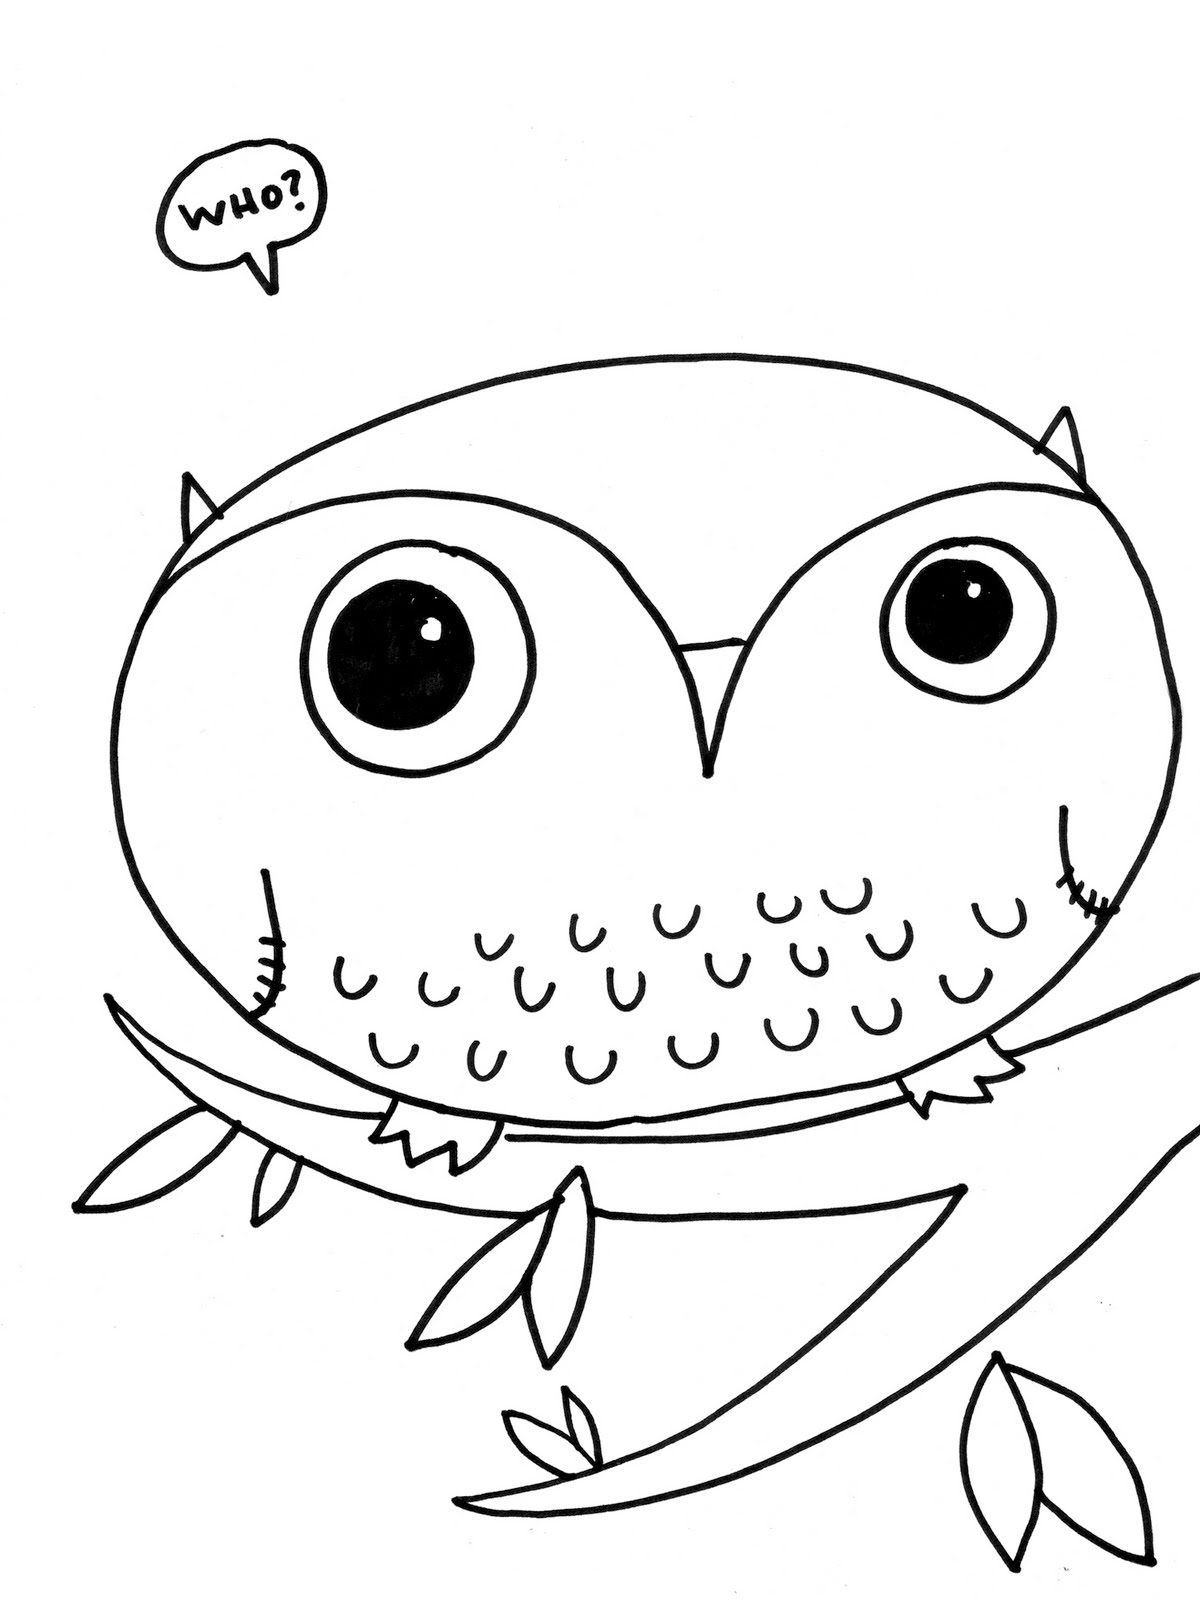 Free coloring pages - Owl Coloring Pages Free